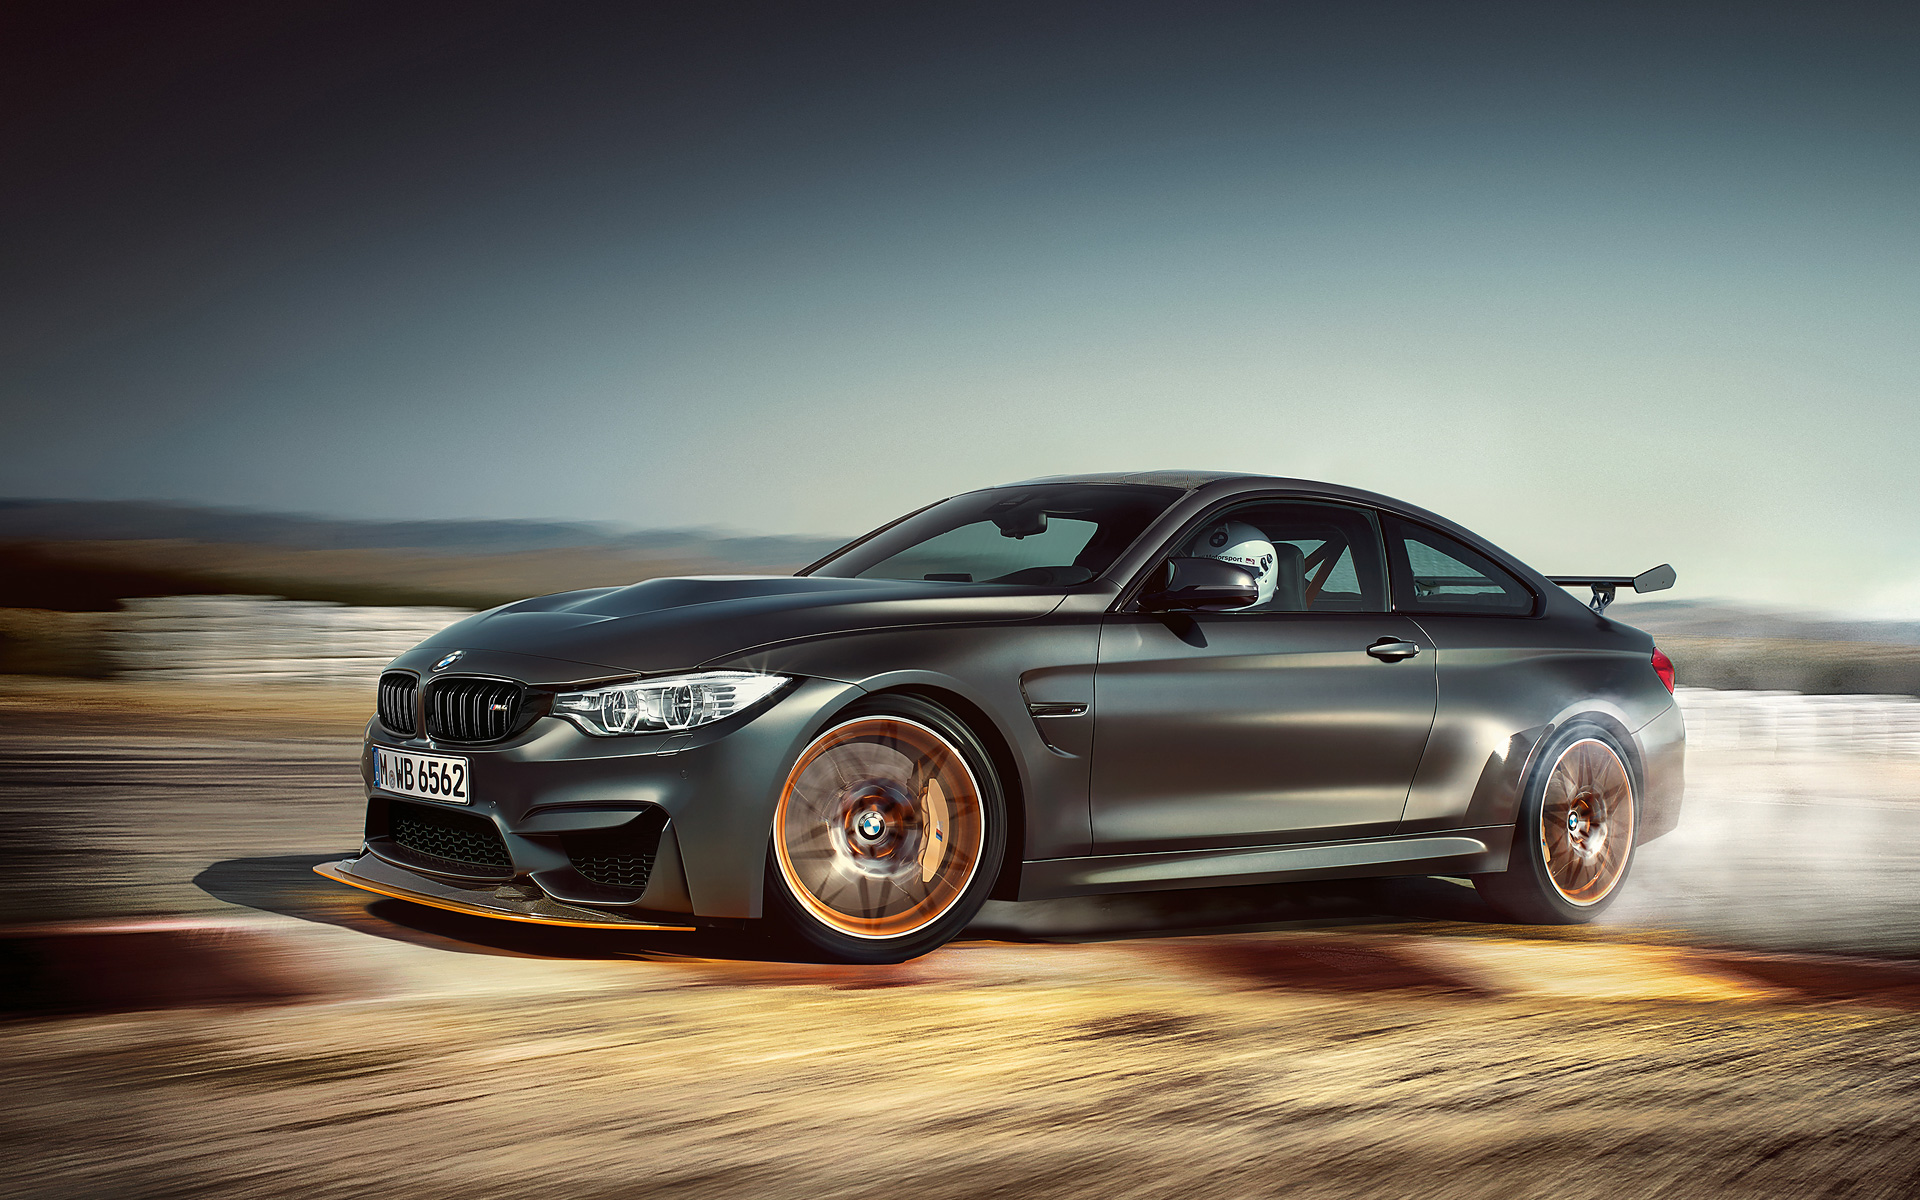 1920x1200 - BMW M4 Wallpapers 9